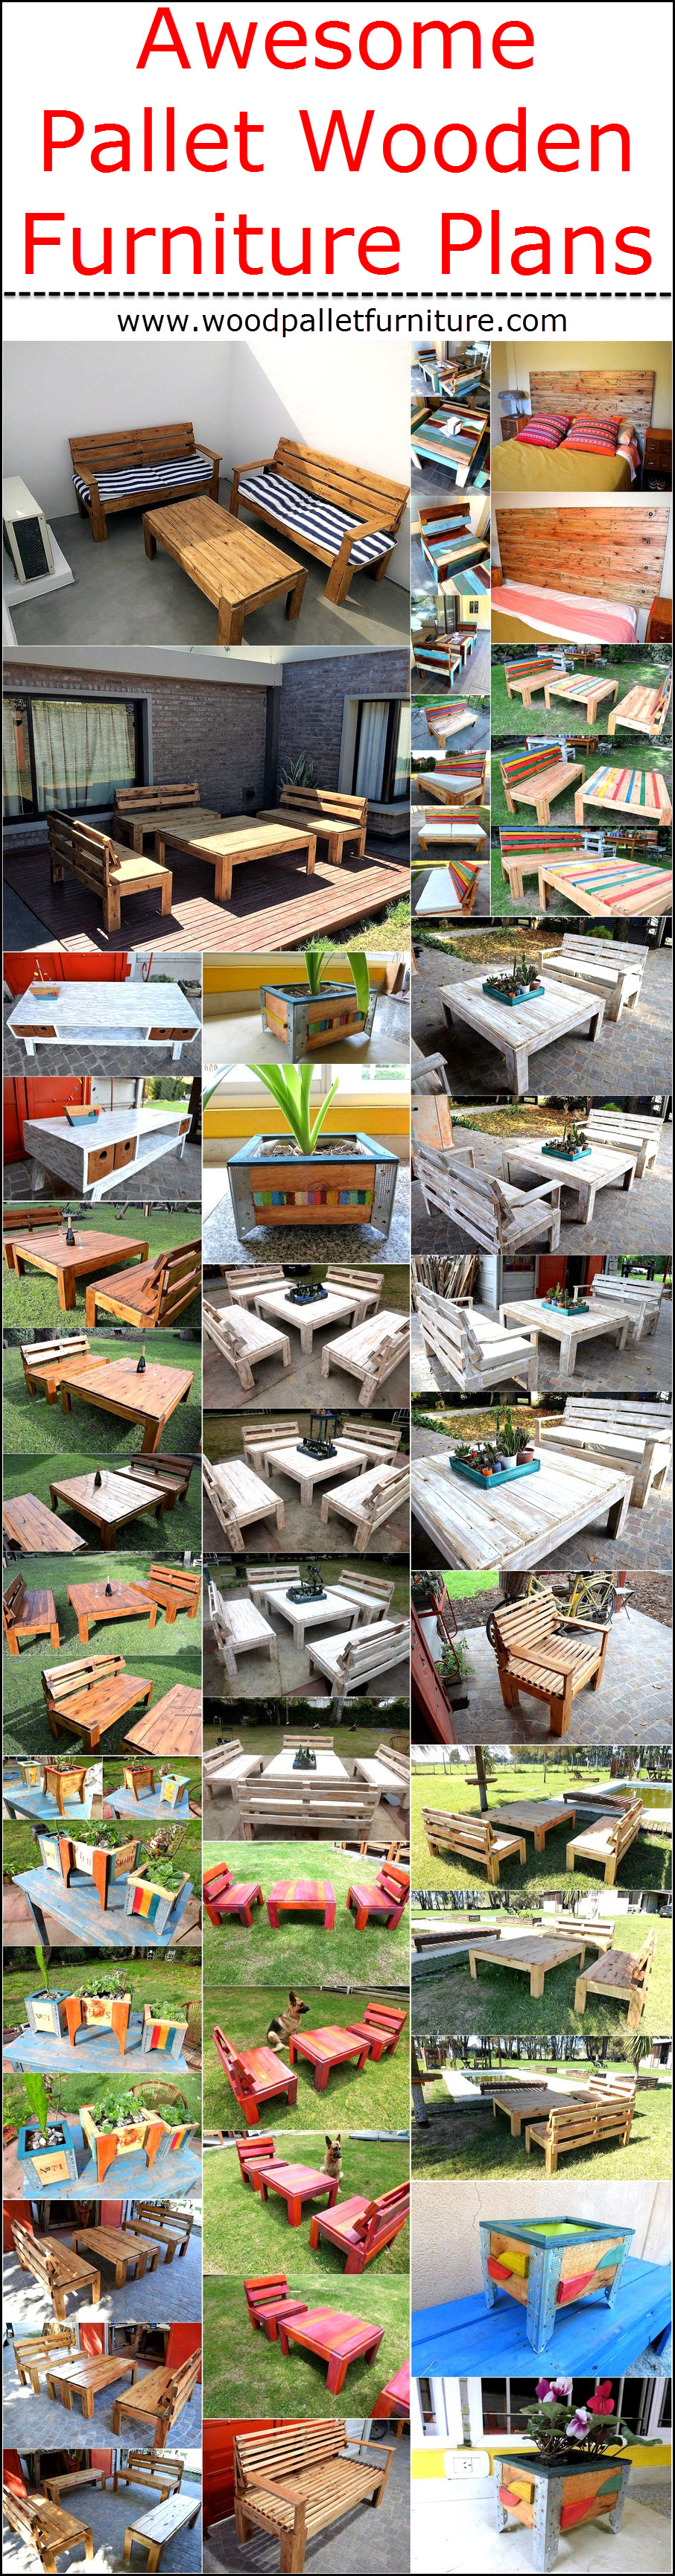 awesome-pallet-wooden-furniture-plans